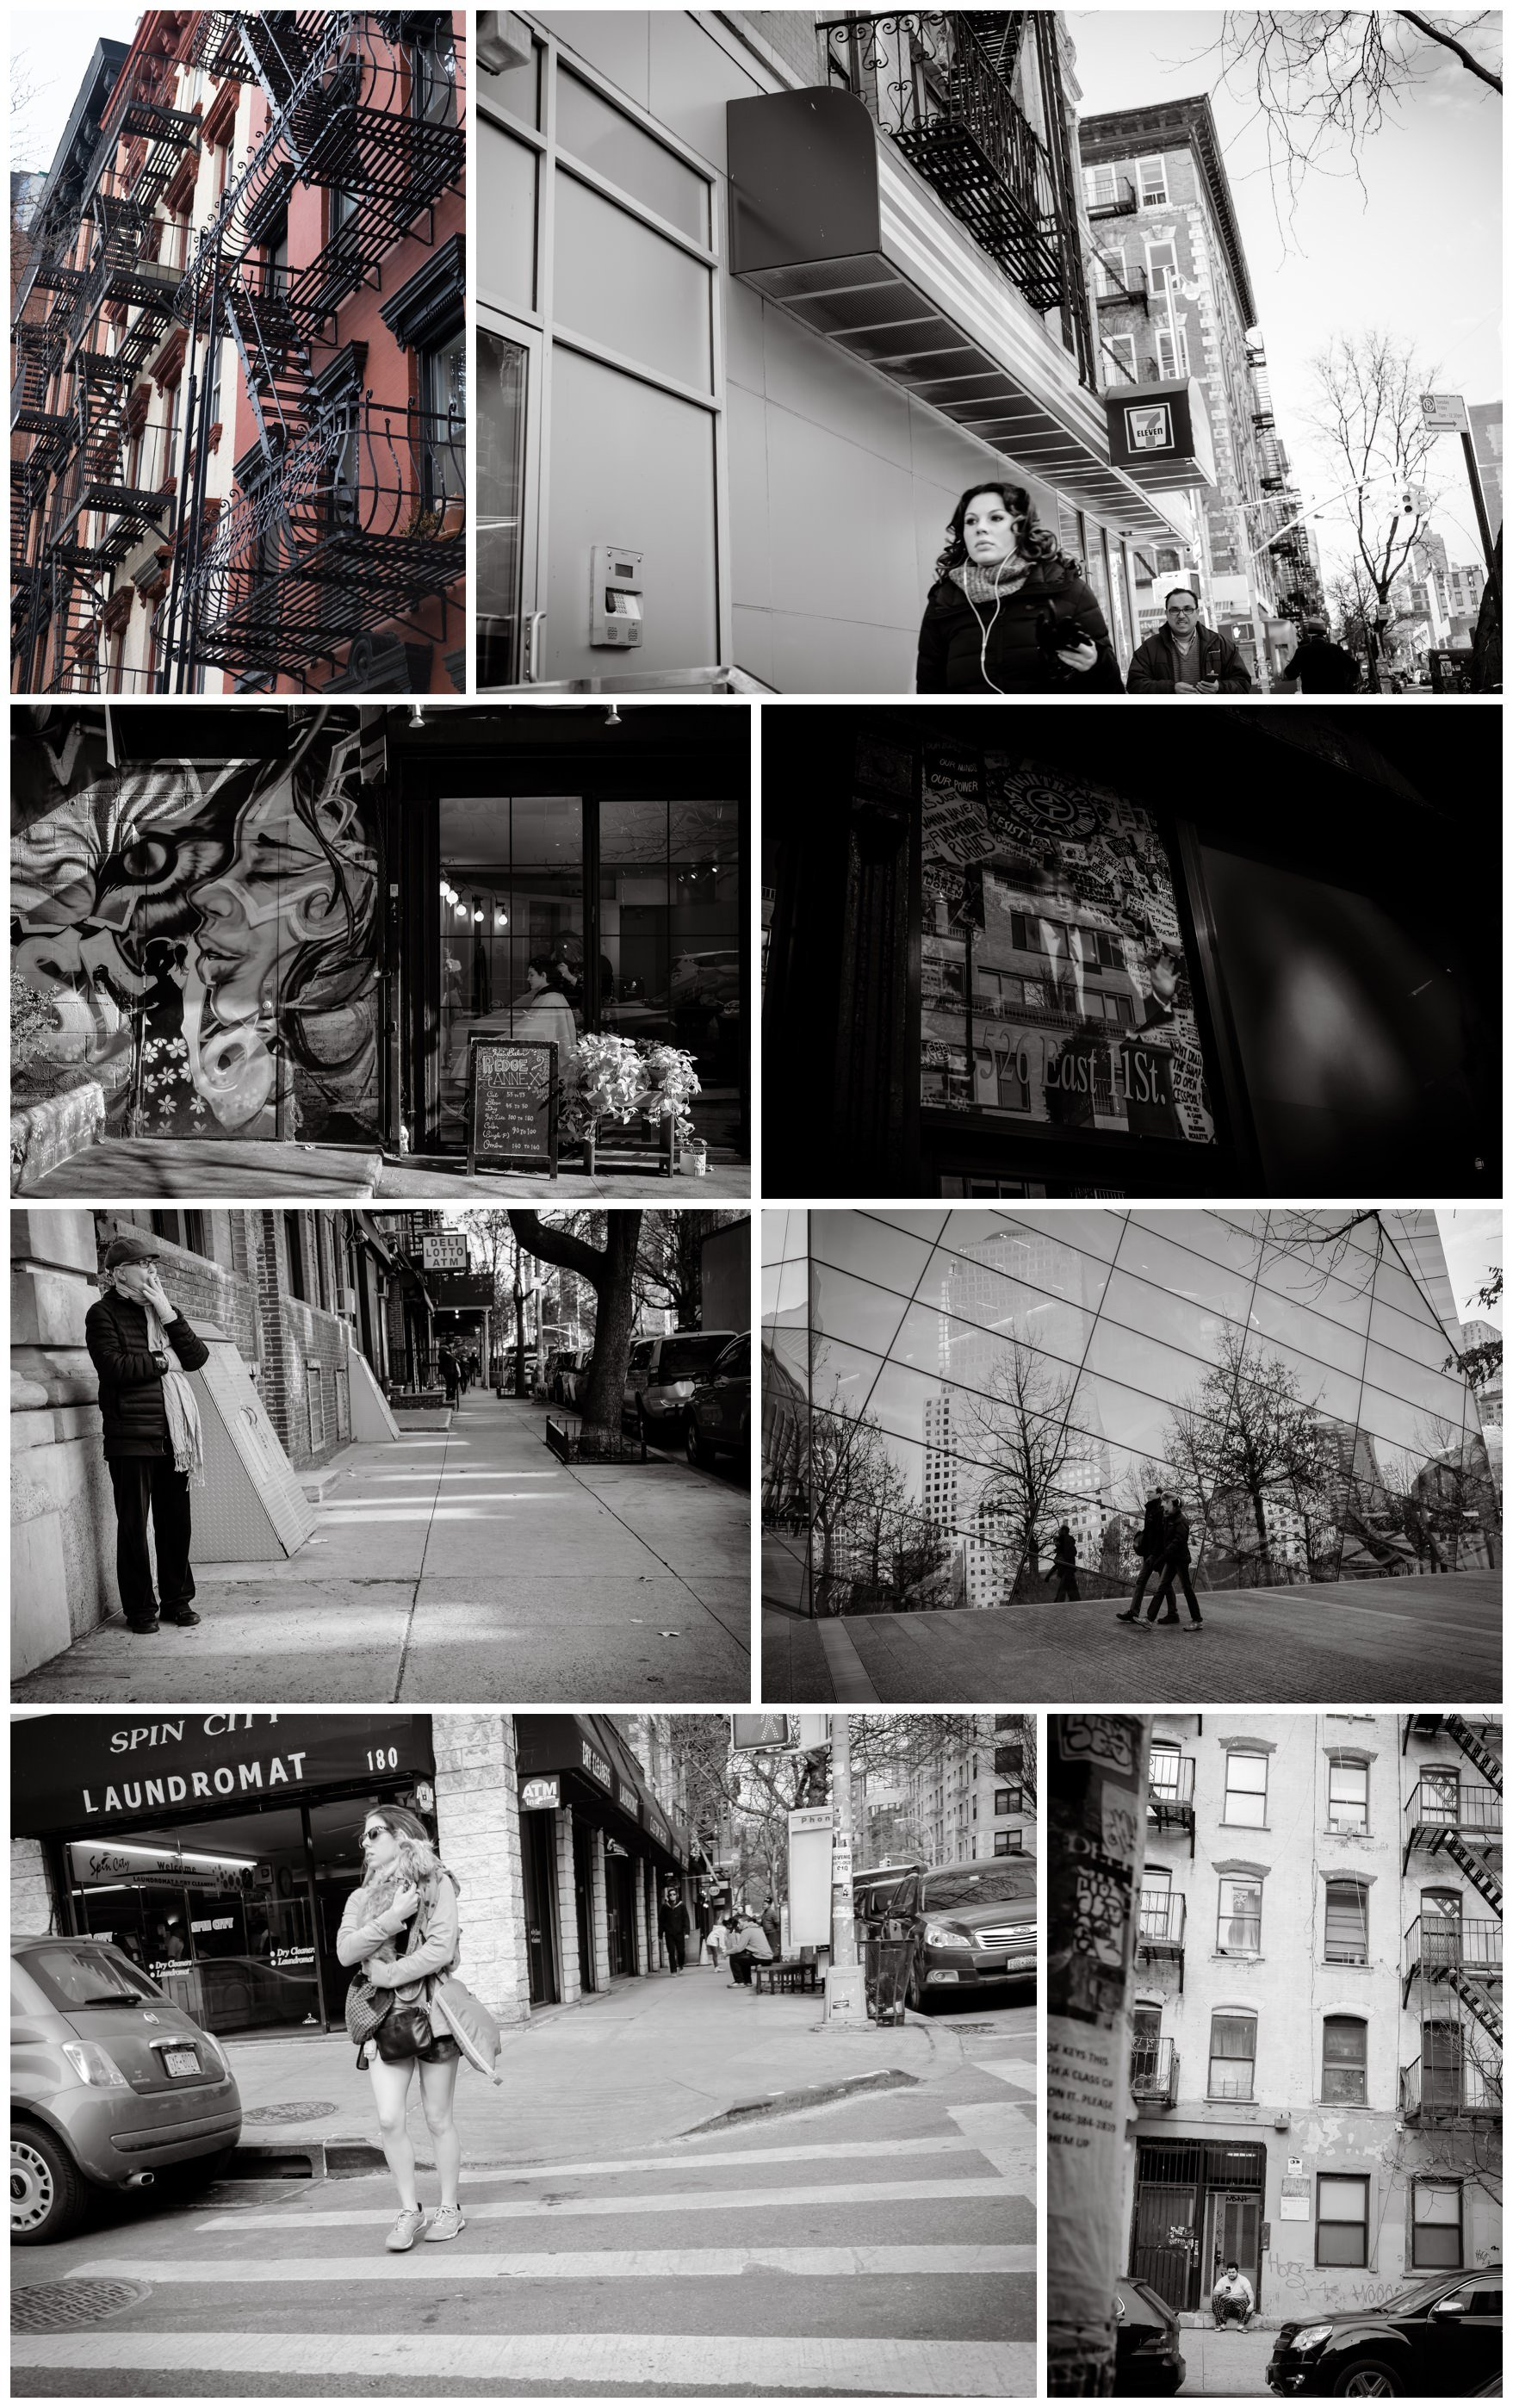 a montage of black and white images of street photography including reflections, old characterful men on streets